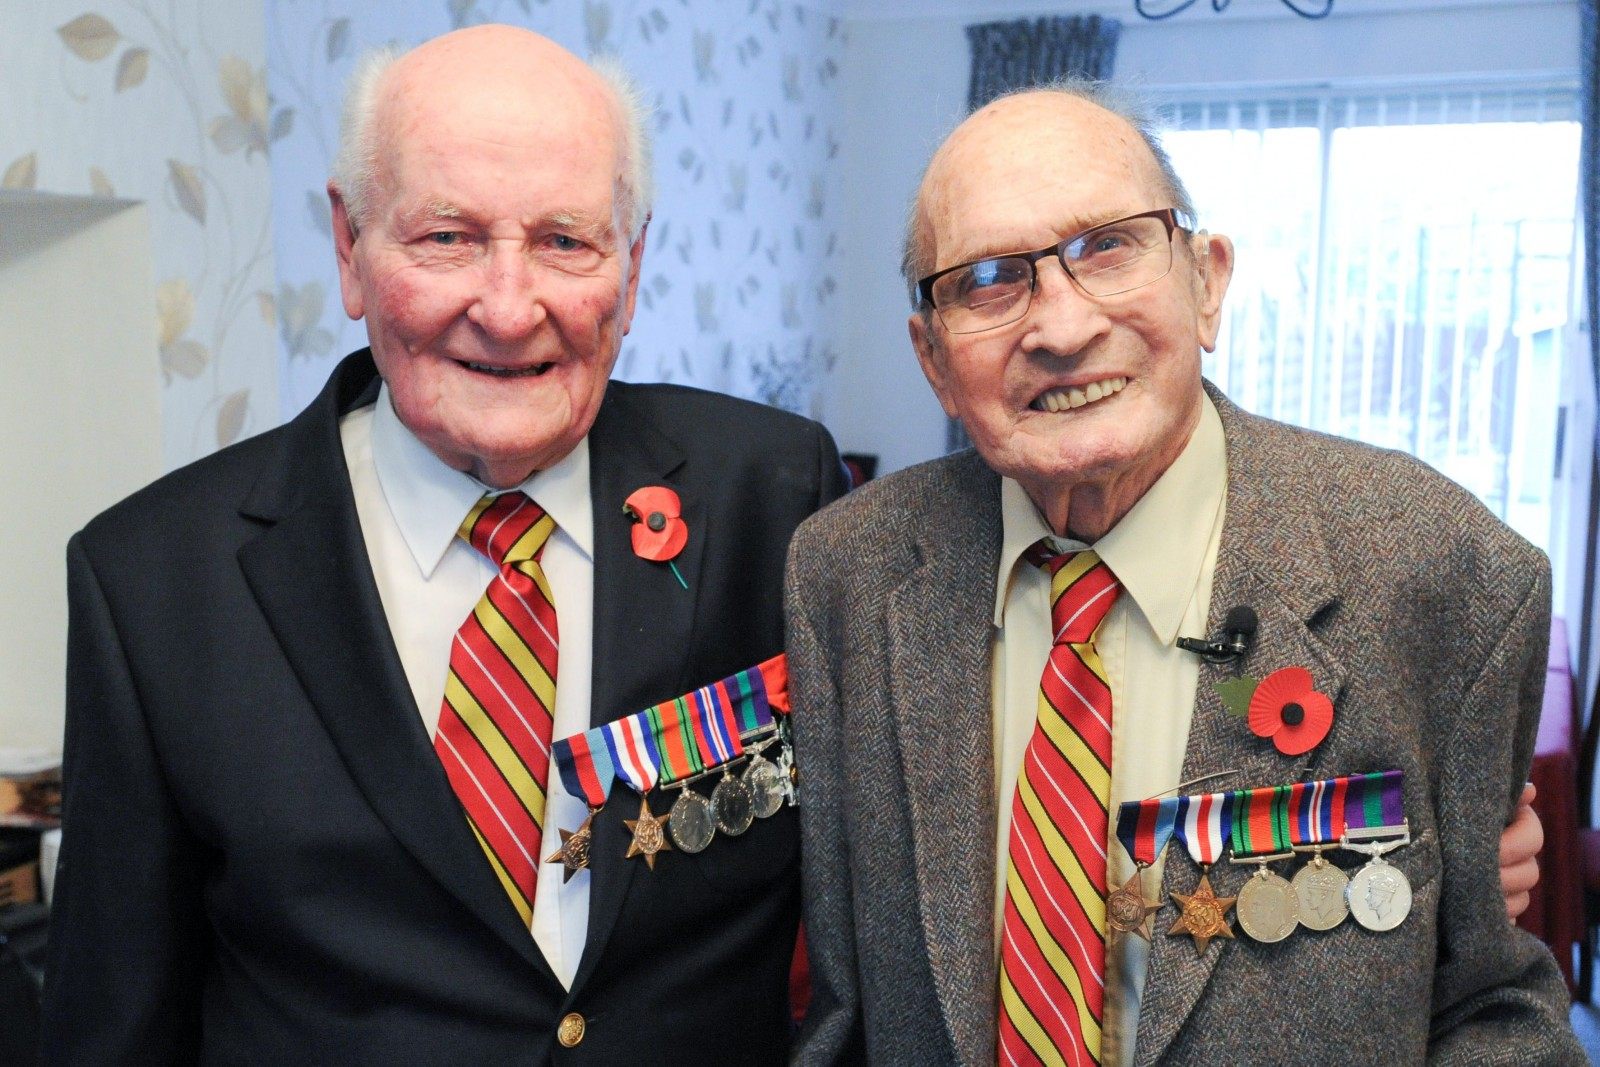 War heroes reunited after 40 years and discover they live just three miles apart